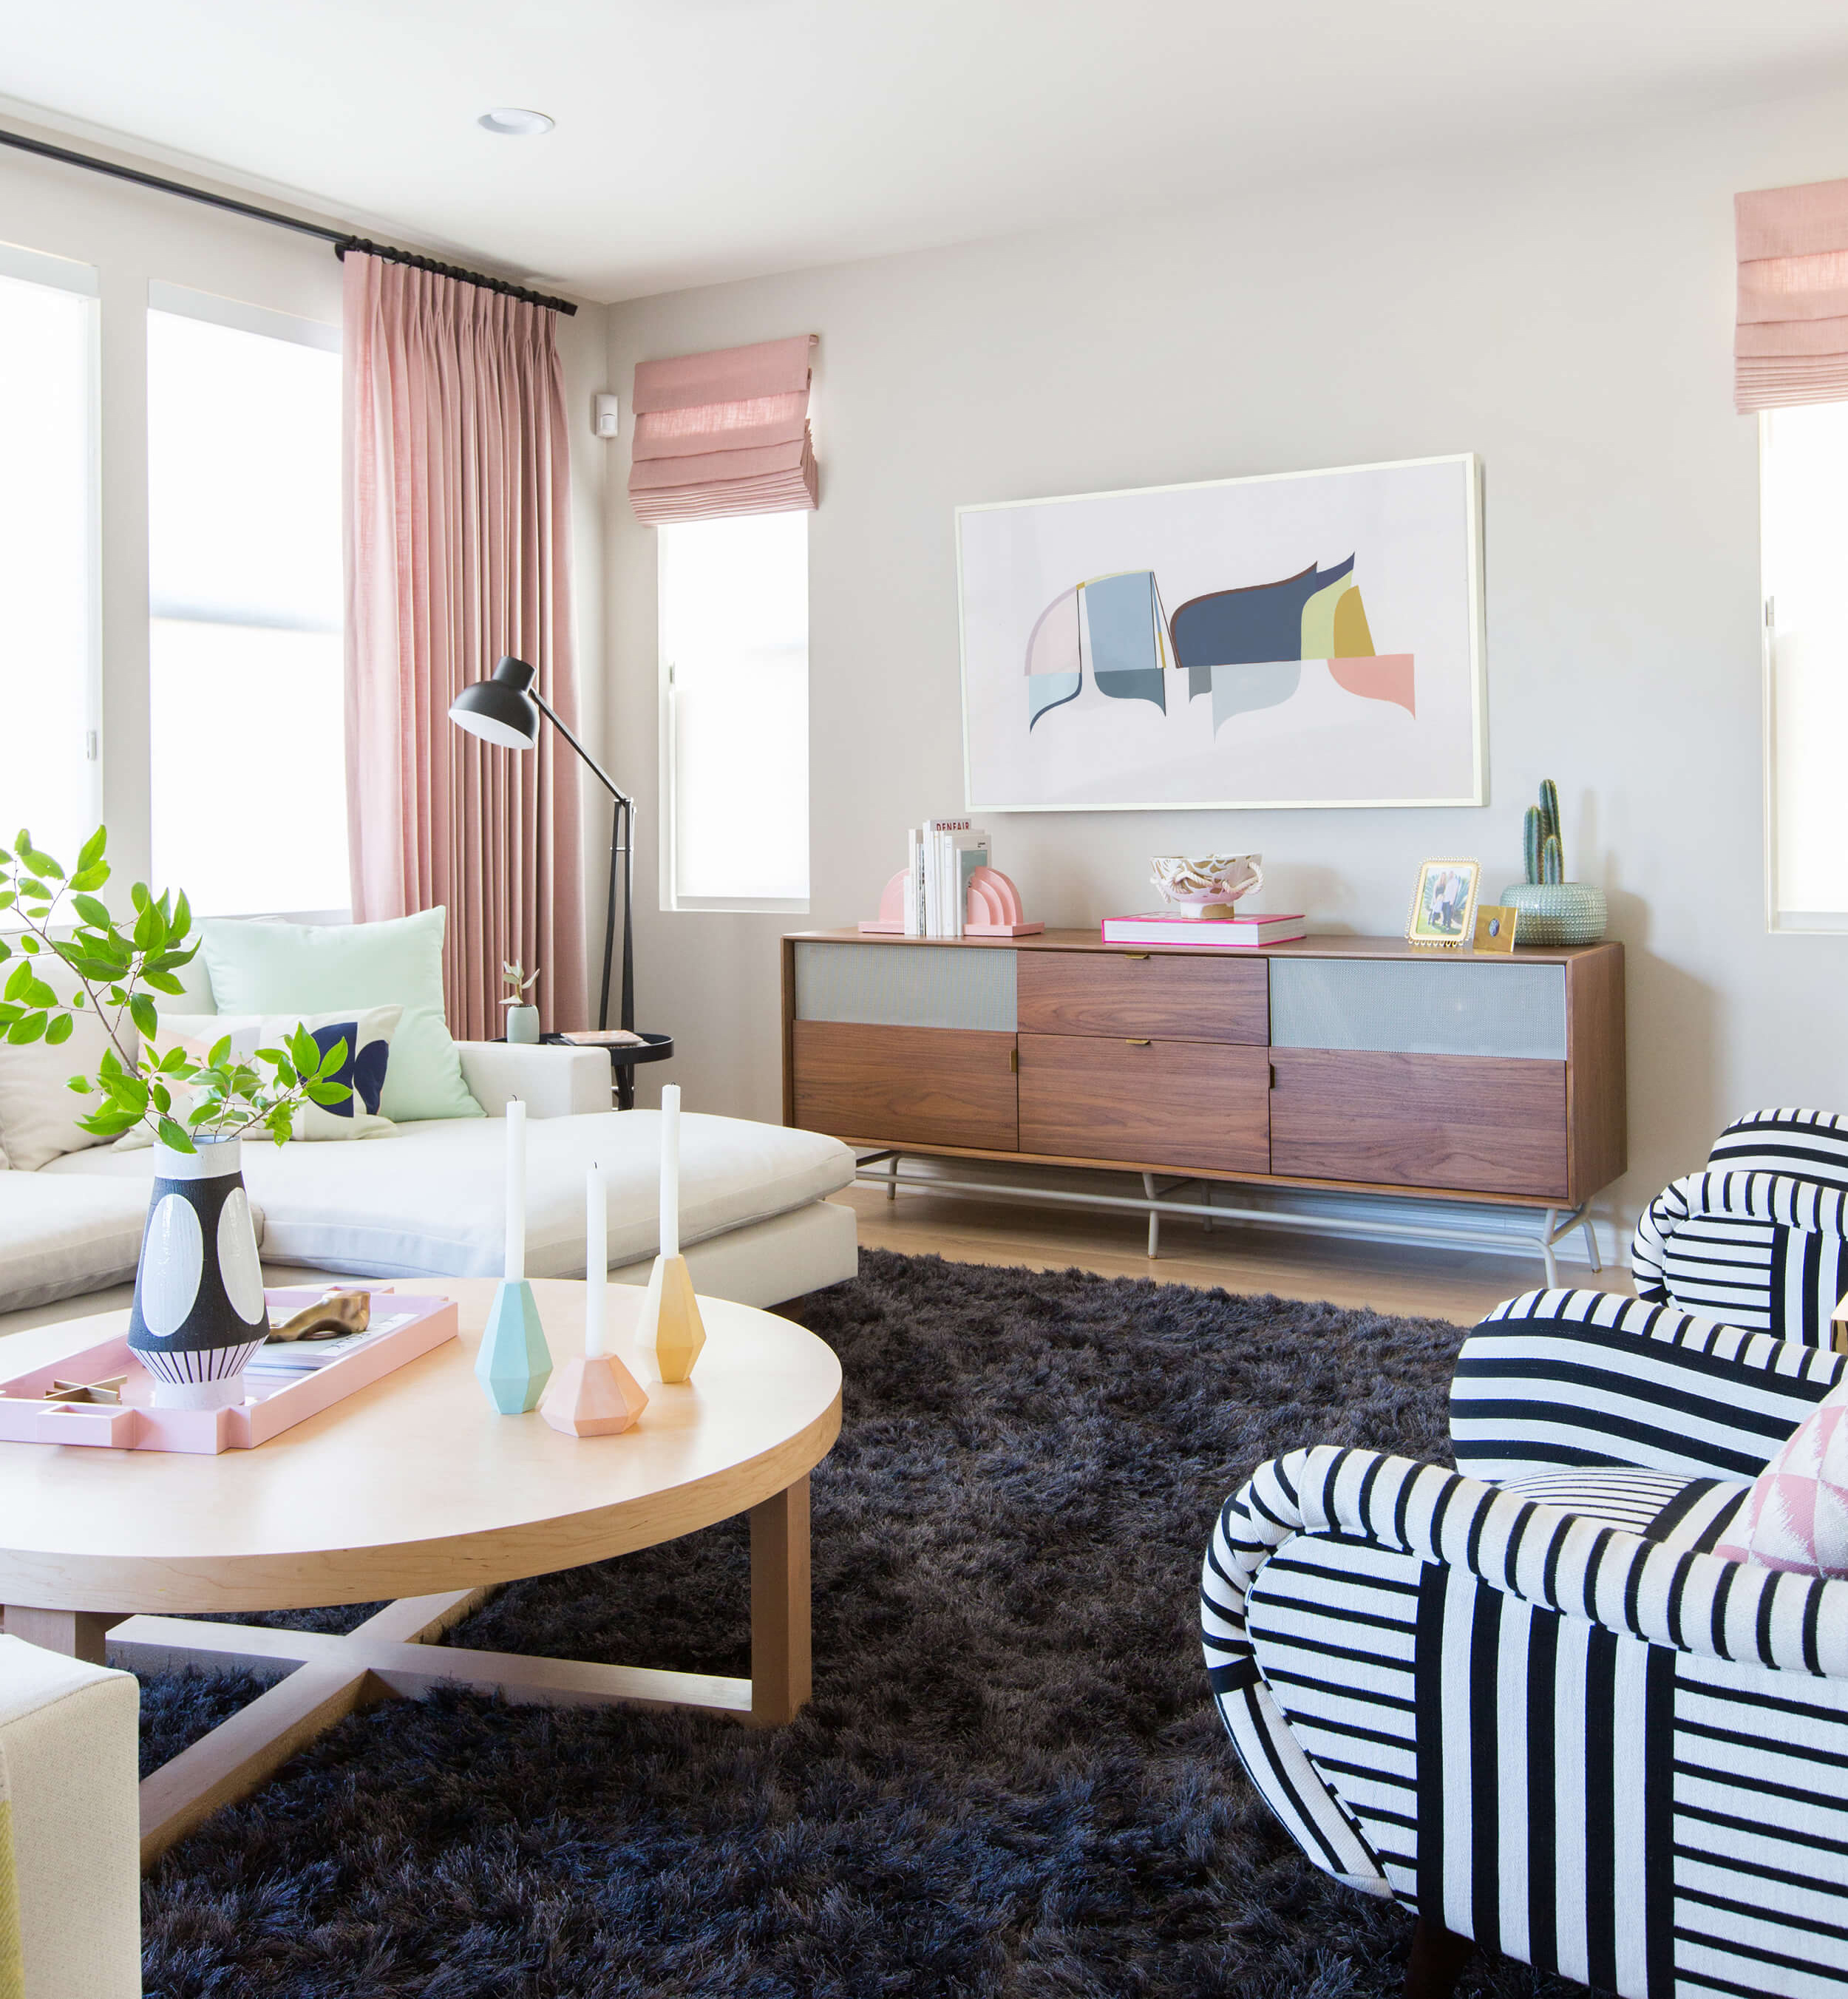 how coffee table for every space emily henderson design milk modern pink black and white jaimie derringer living room reveal with frame cropped accent snack glass top accents mid